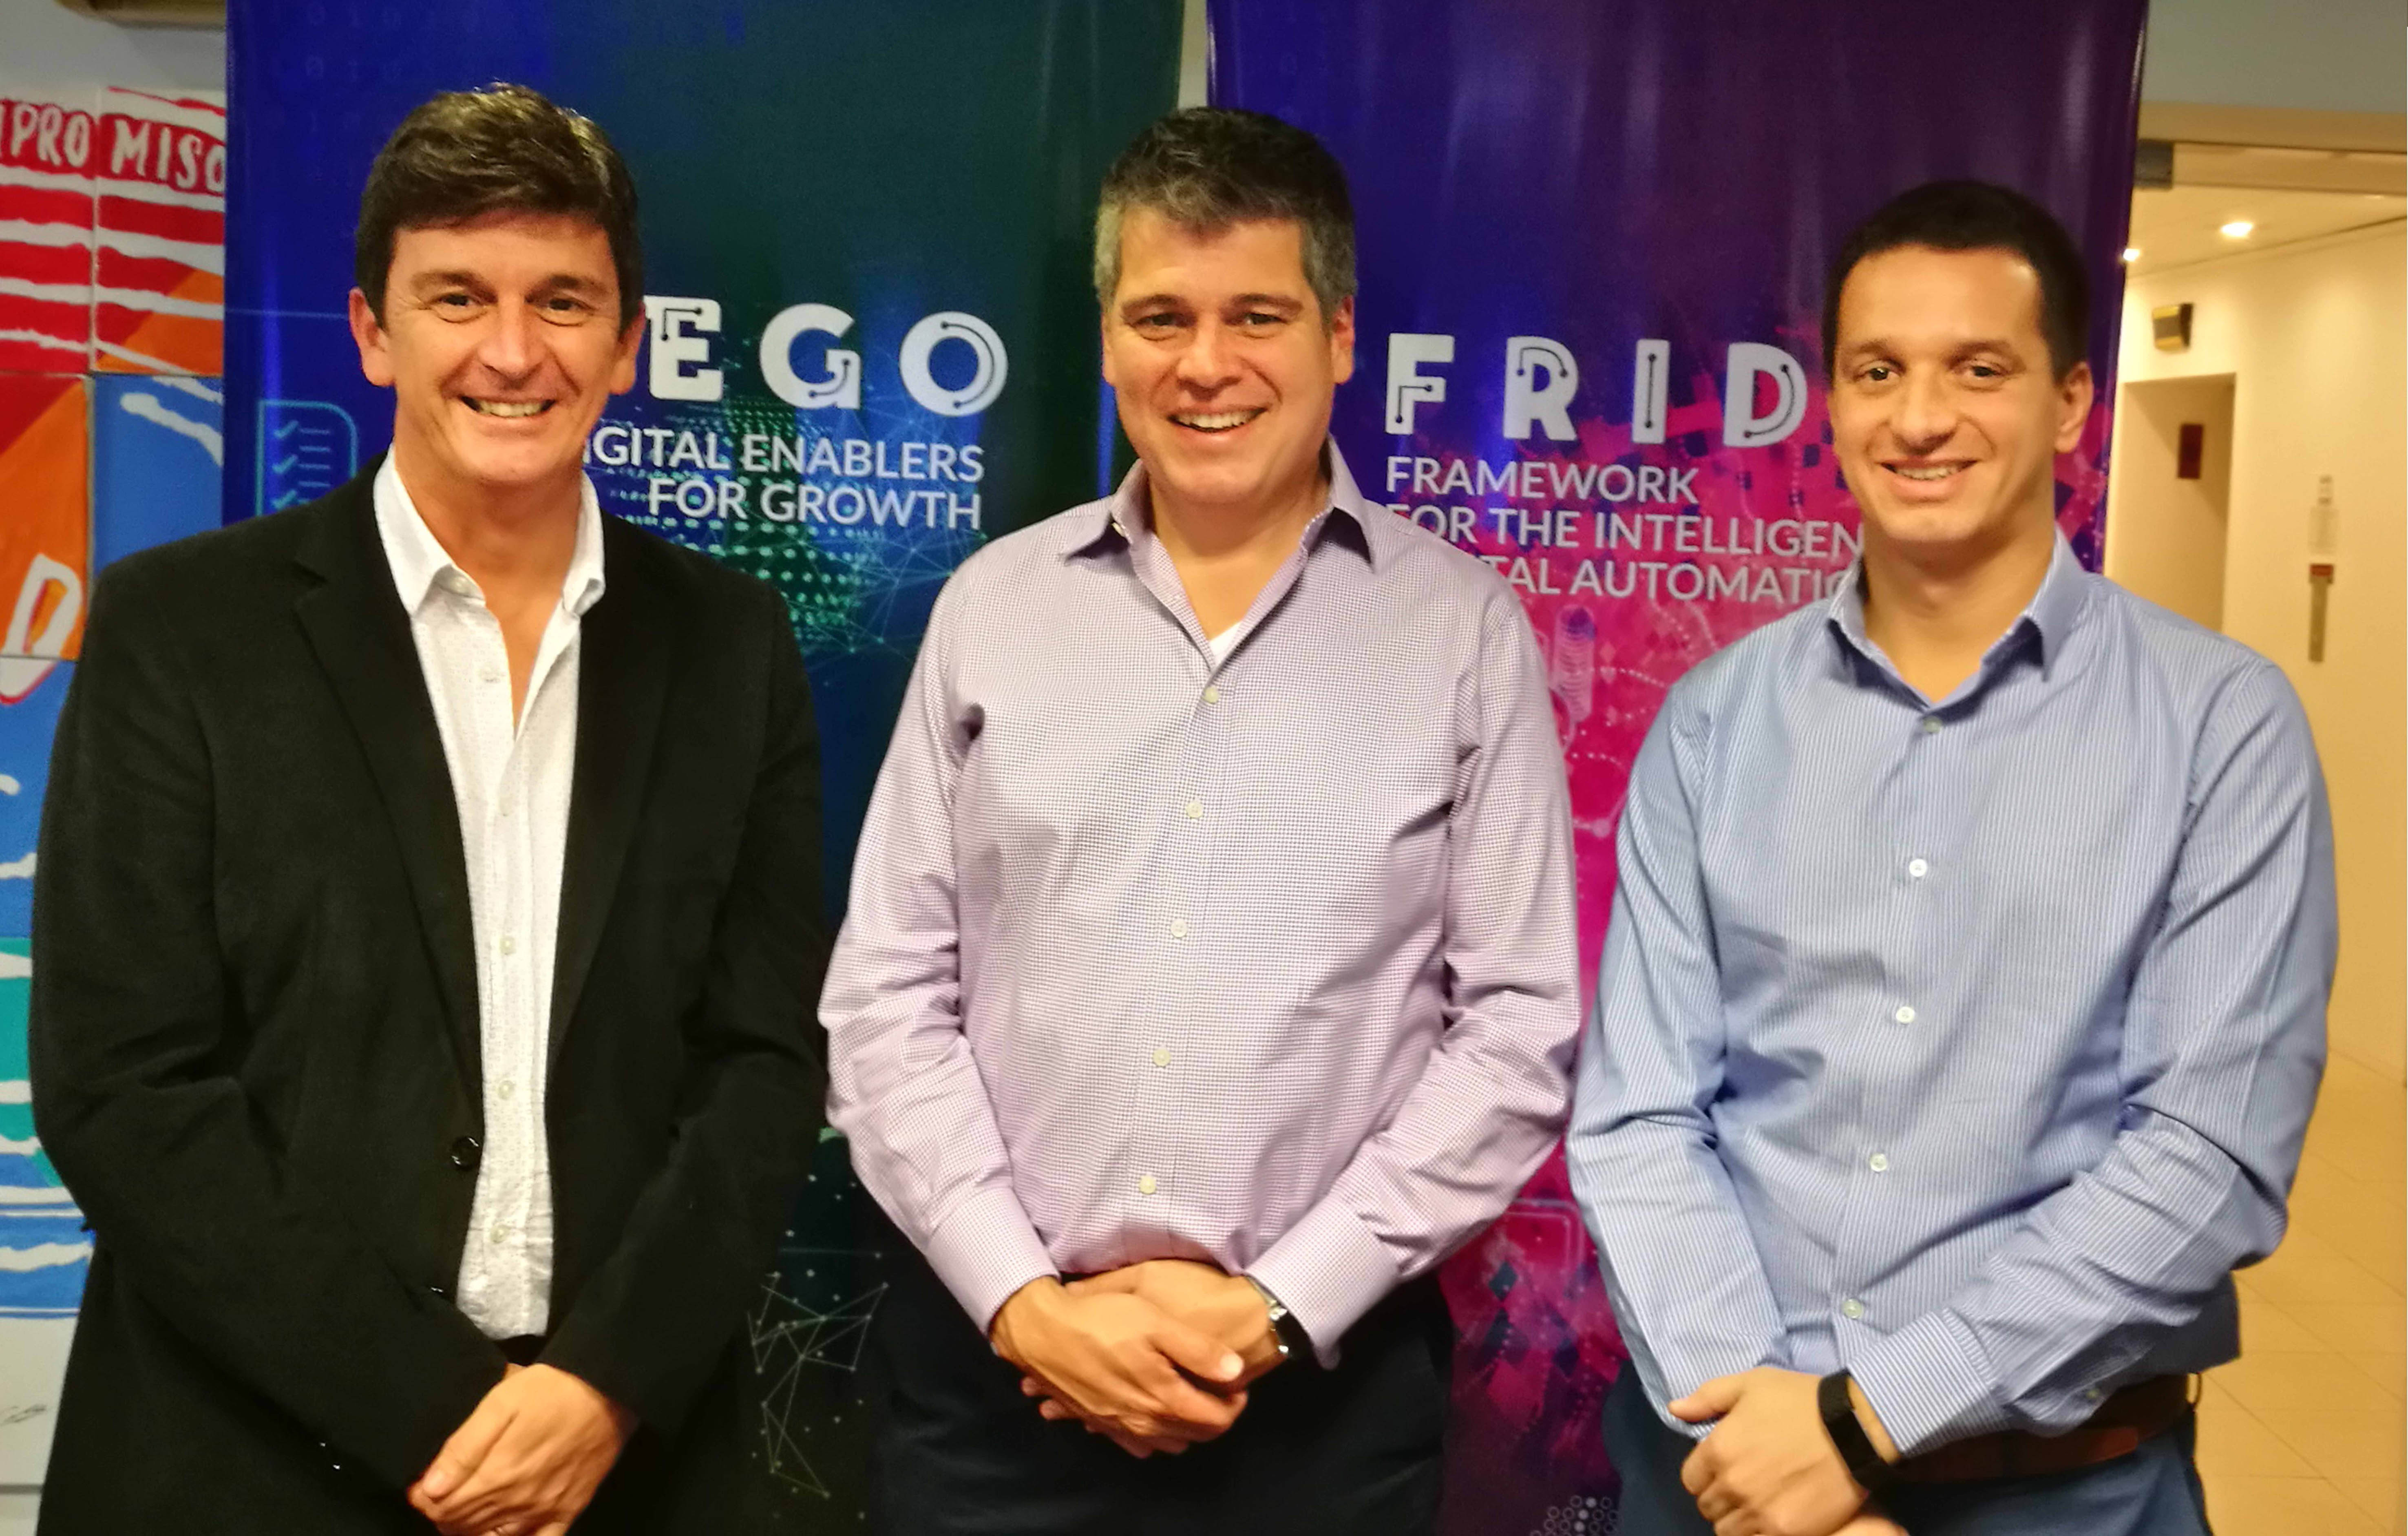 De Izquierda a Derecha: Mauro Mattioda, CEO Softtek Sudamérica Hispana; Alejandro Camino, VP de Marketing Global de Softtek; Juan José D'Alessandro - Director Comercial de Servicios Sudamérica Hispana